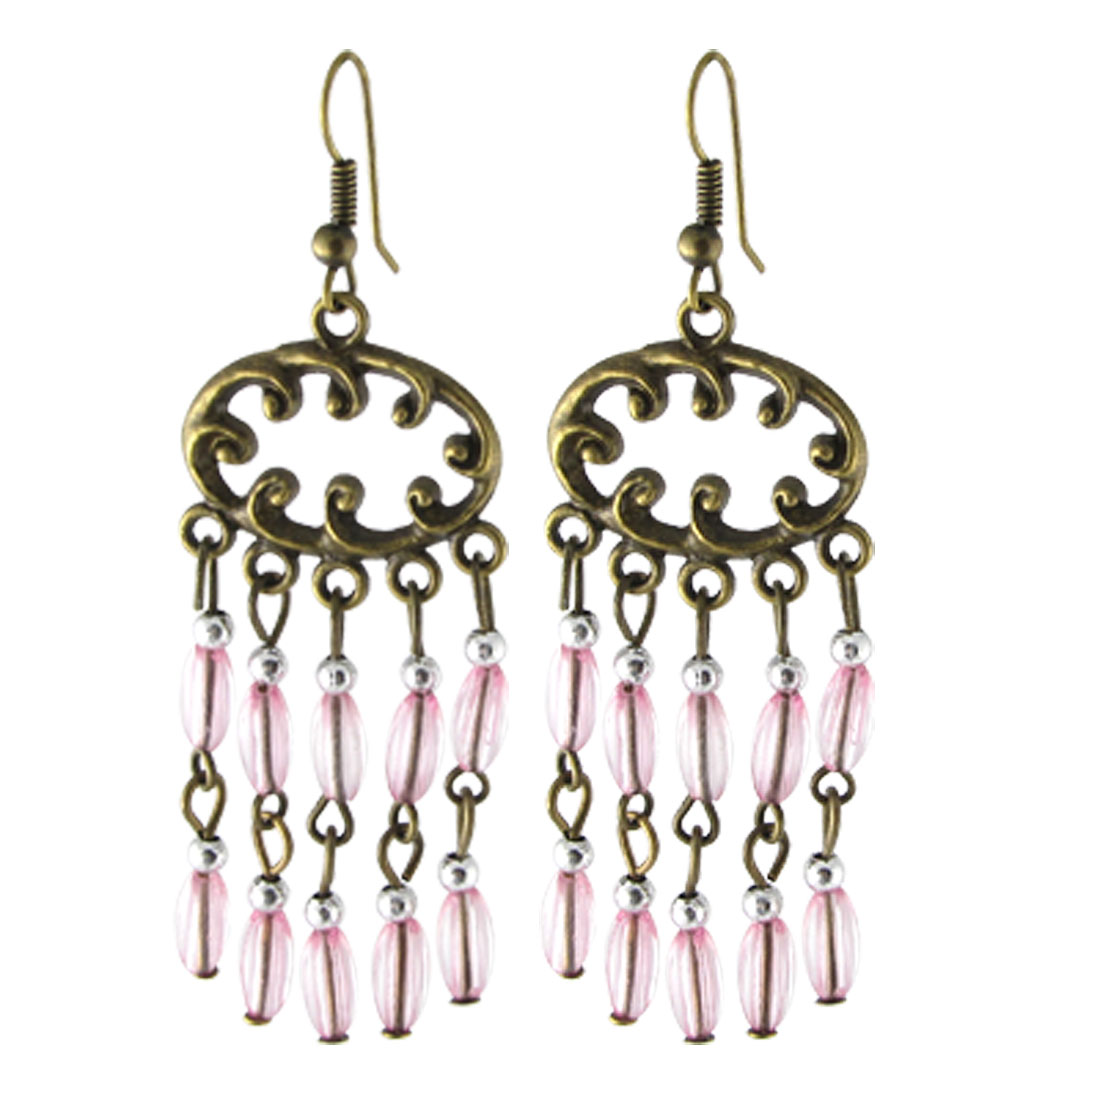 Bronze Tone Metal Dangling Earrings w Decorative Pink Plastic Beads